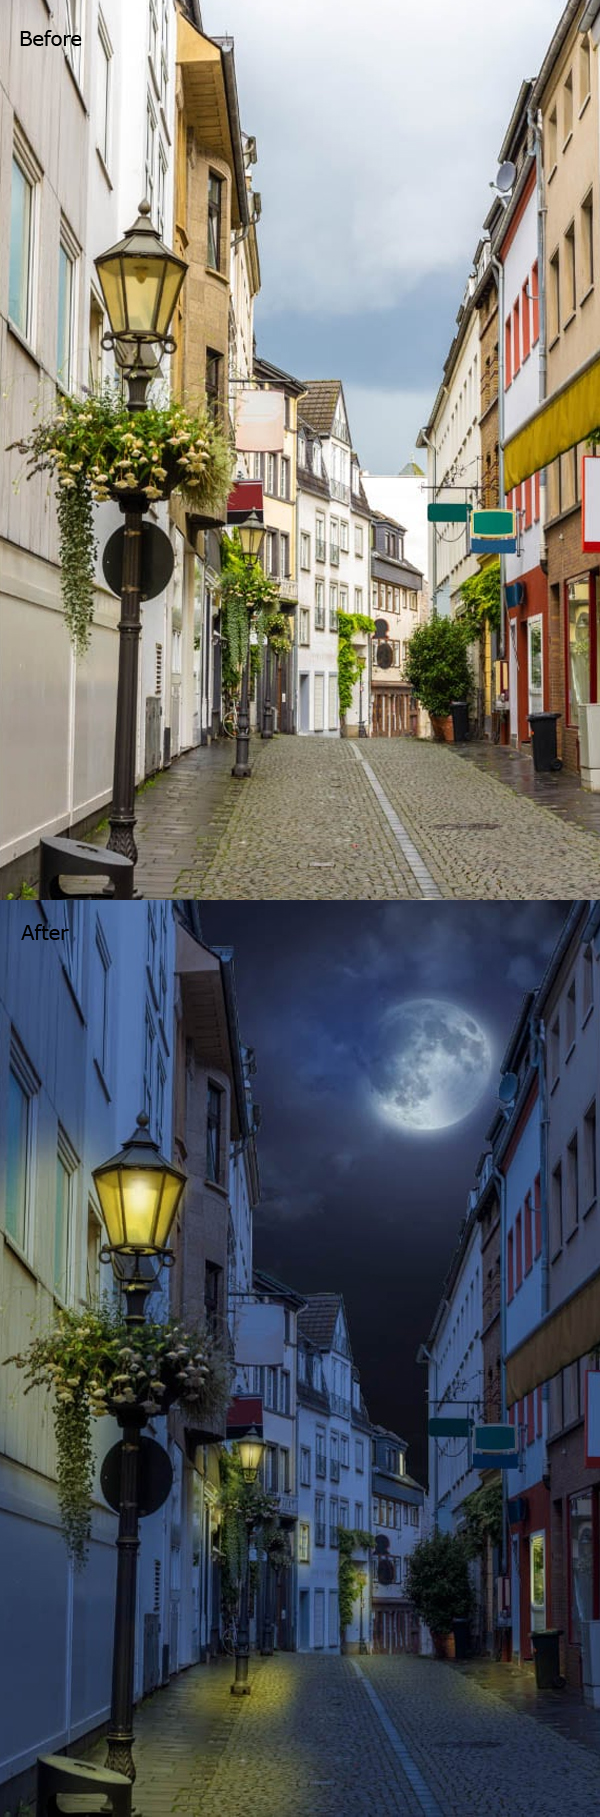 How to Turn Day into Night in this Photoshop Tutorial